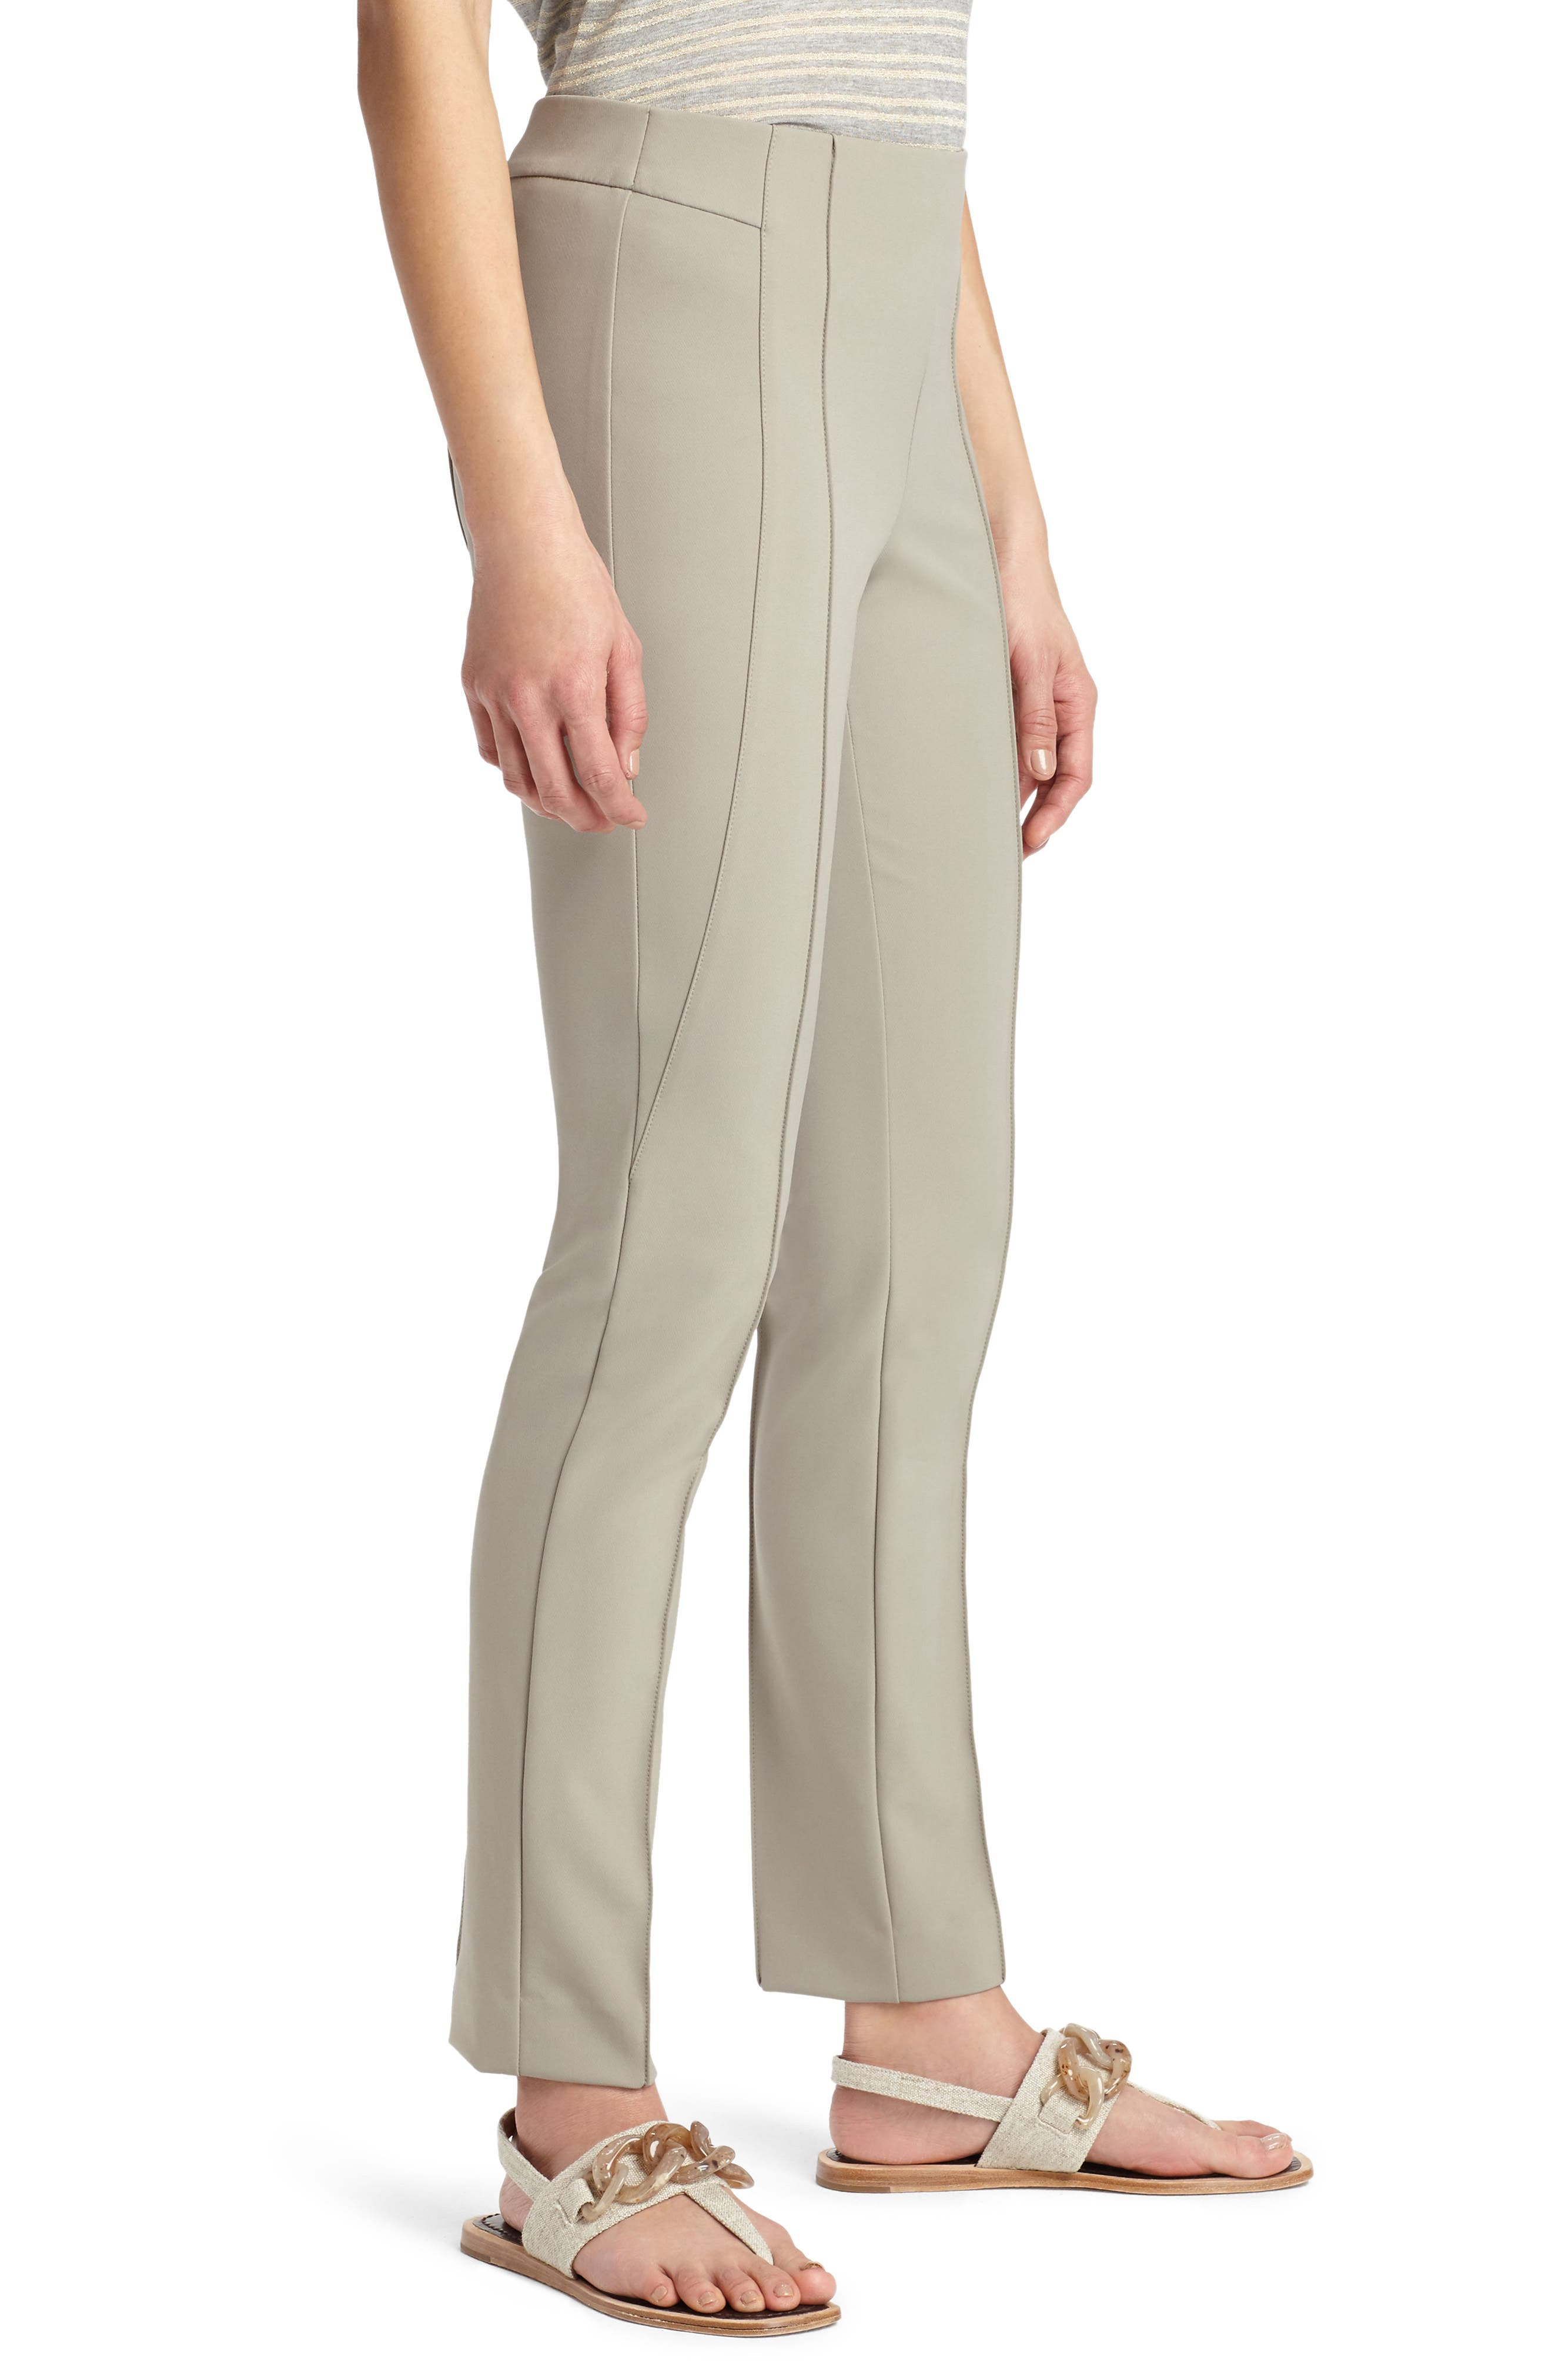 LAFAYETTE 148 NEW YORK, 'Gramercy' Acclaimed Stretch Pants, Alternate thumbnail 5, color, PARTRIDGE